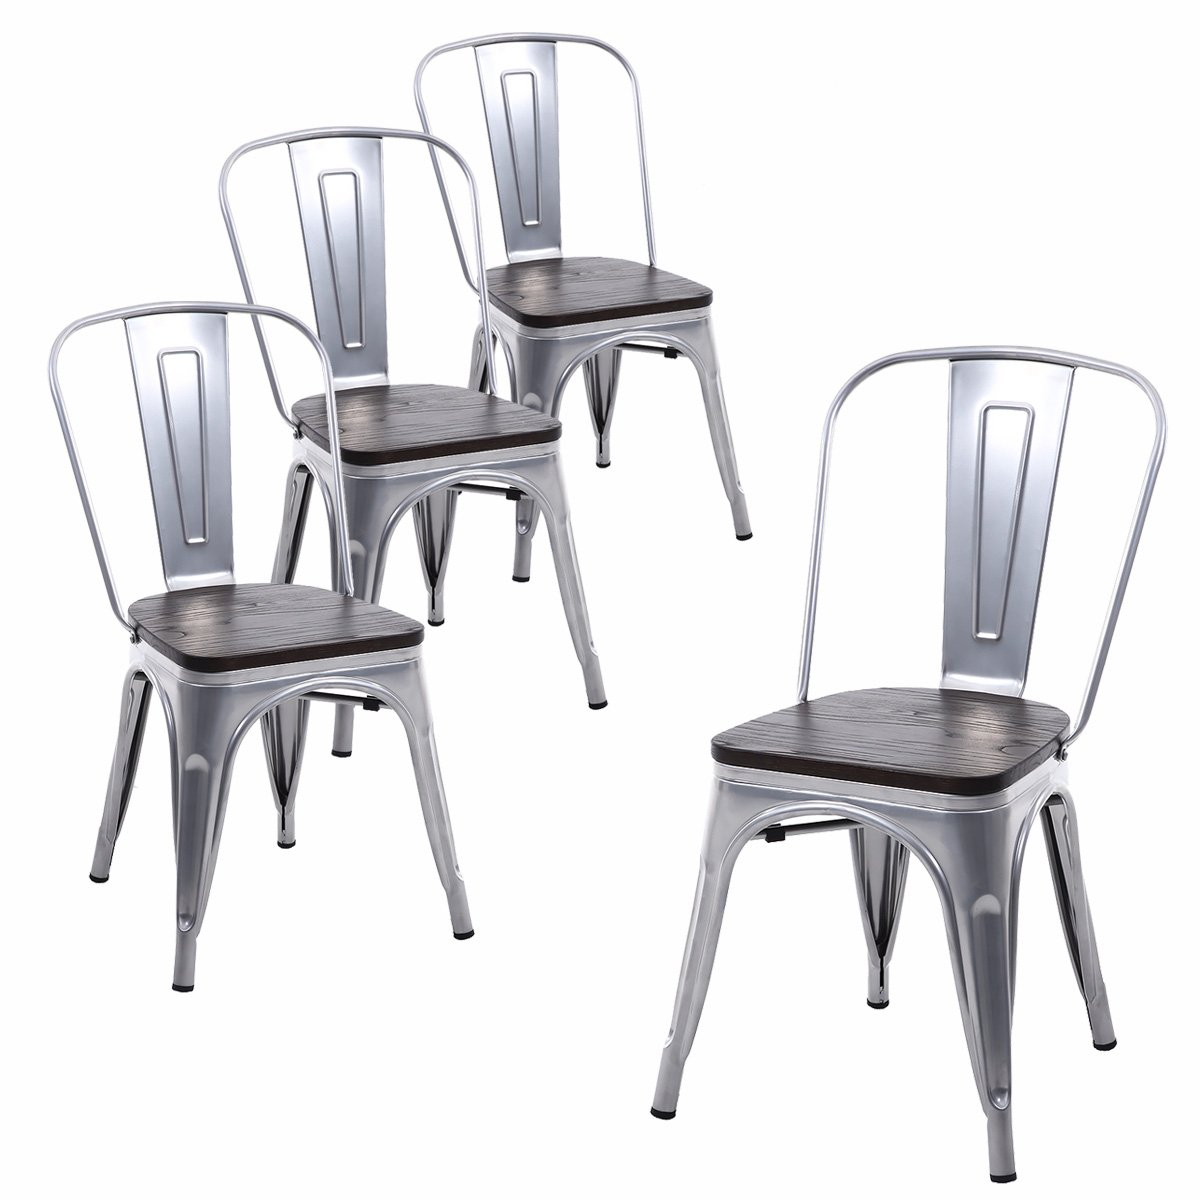 Buschman Set of Four Gray Wooden Seat Metal Indoor/Outdoor Stackable Chairs with Back